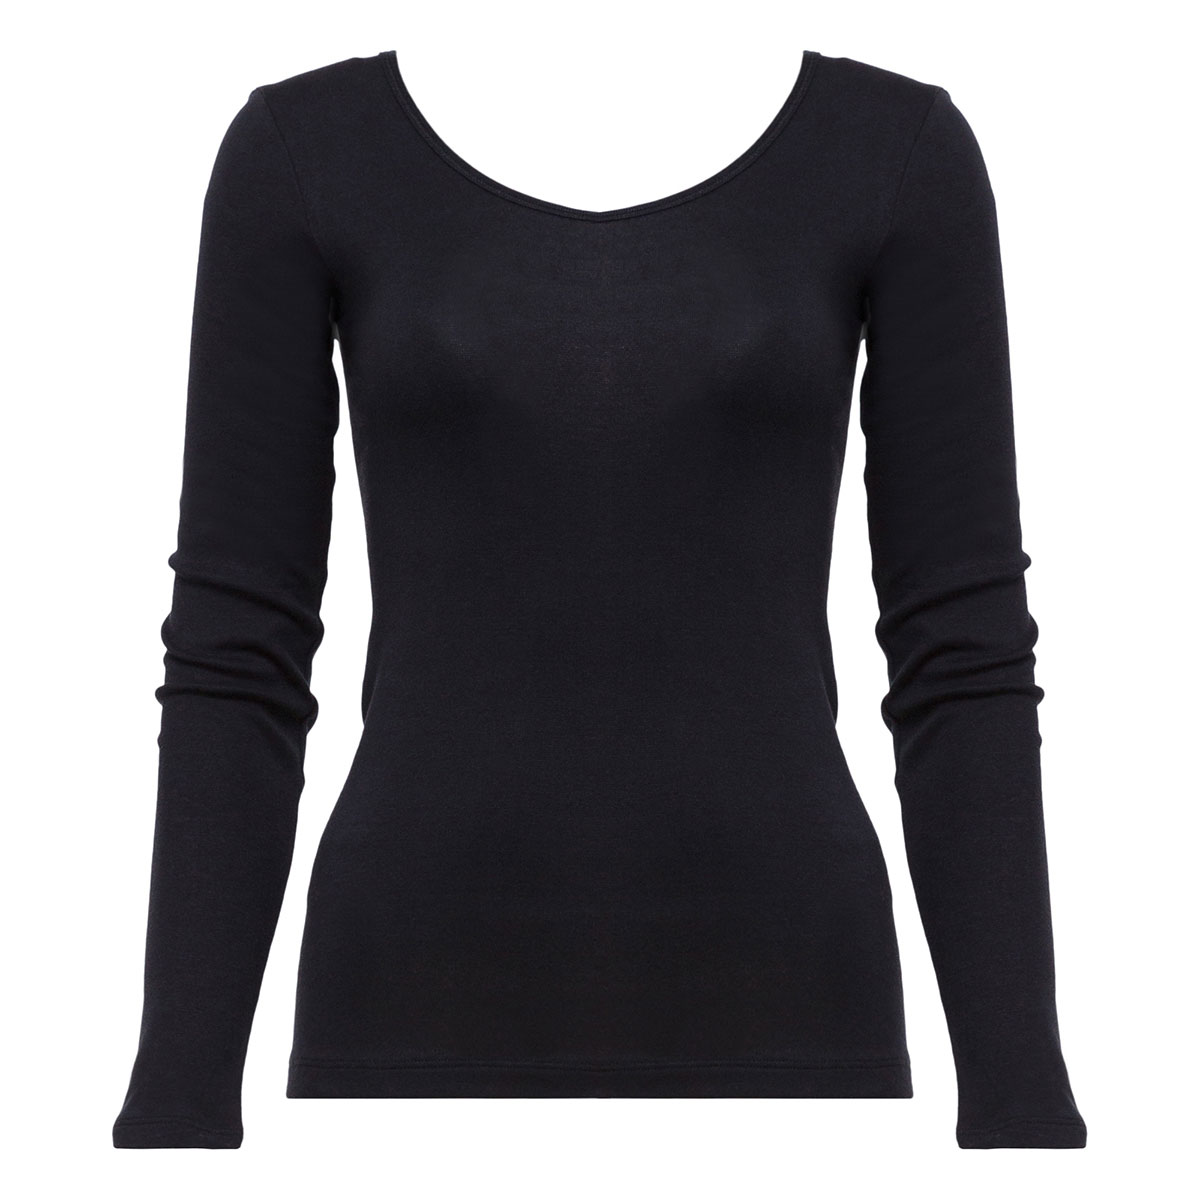 Long Sleeve Top in Black - Cotton Liberty-PLAYTEX